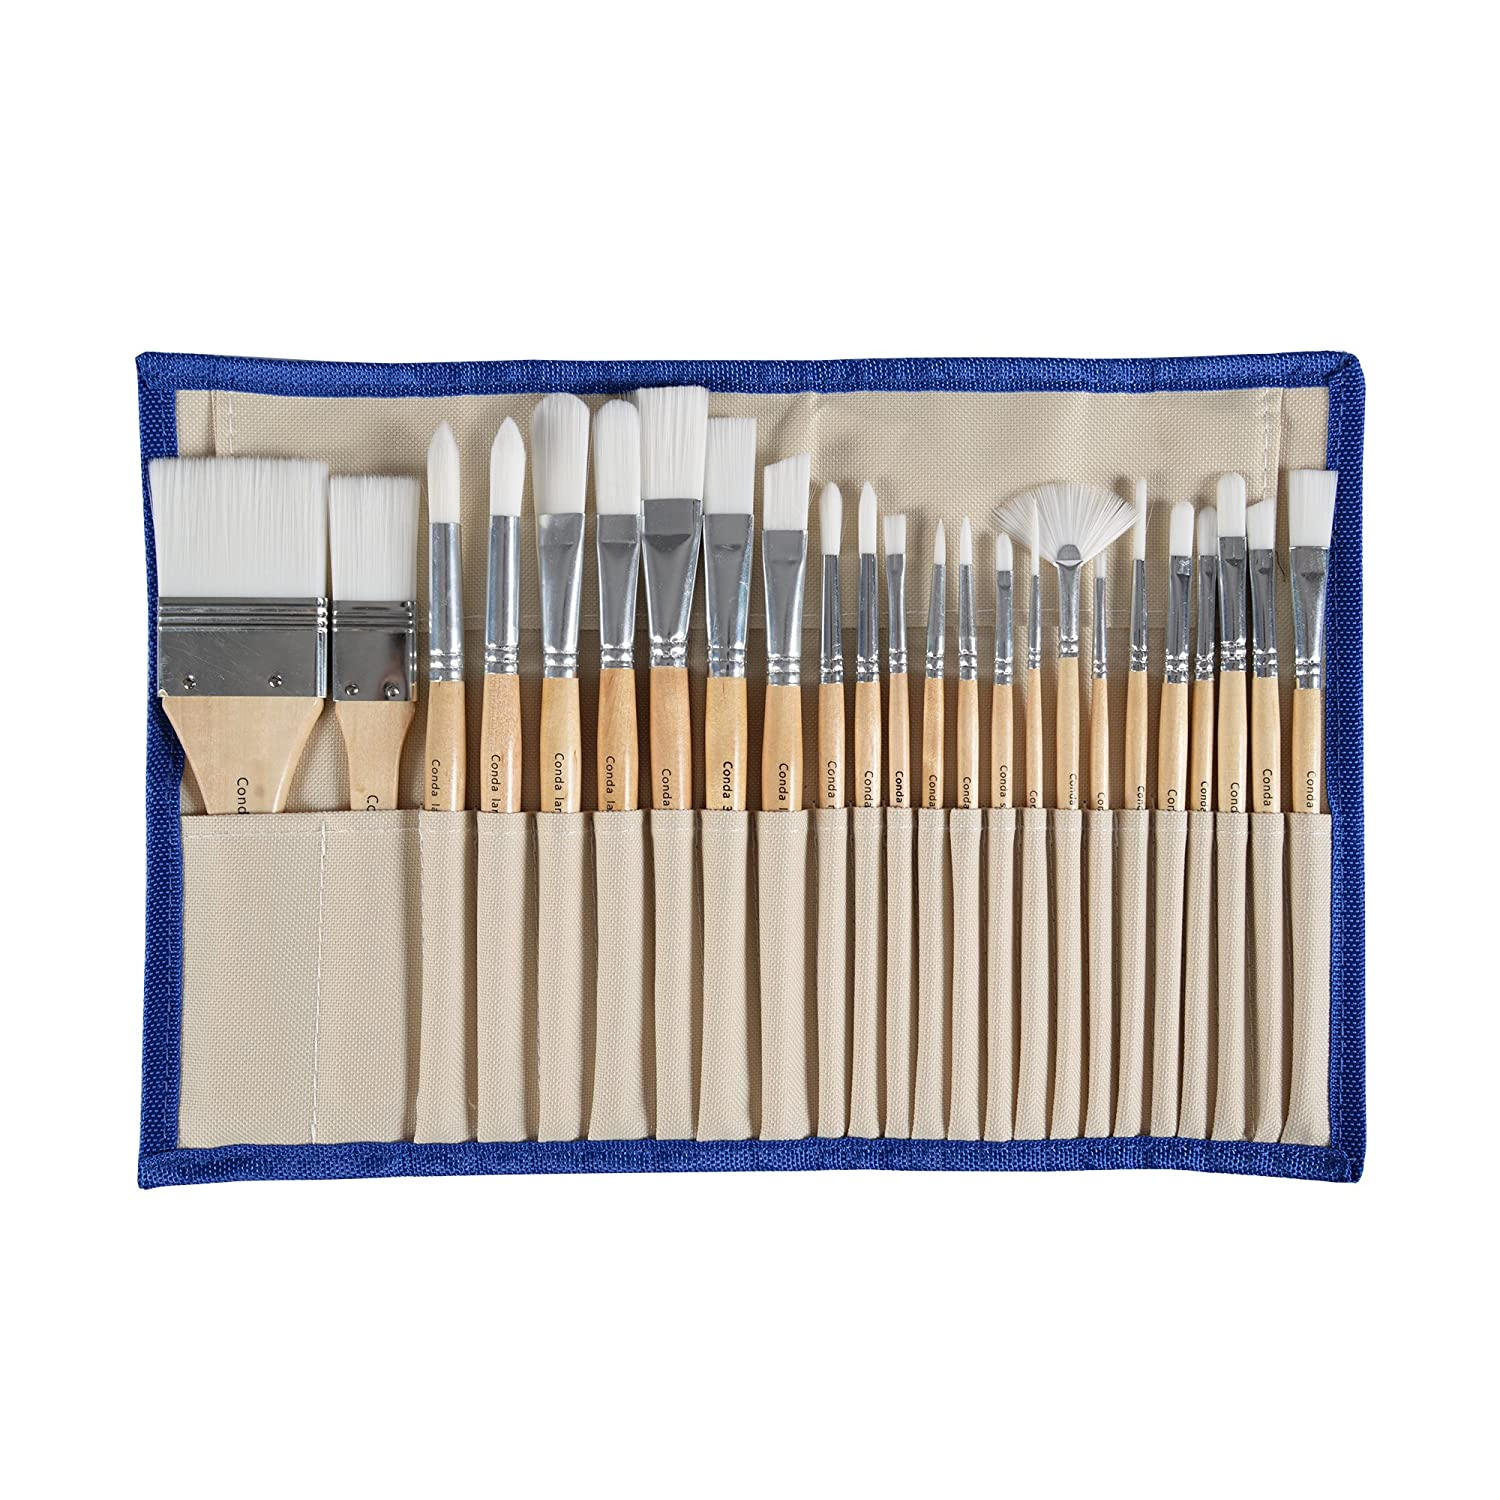 Conda 24 Pcs Paint Brushes Set Professional Wood Handle With Case by Conda